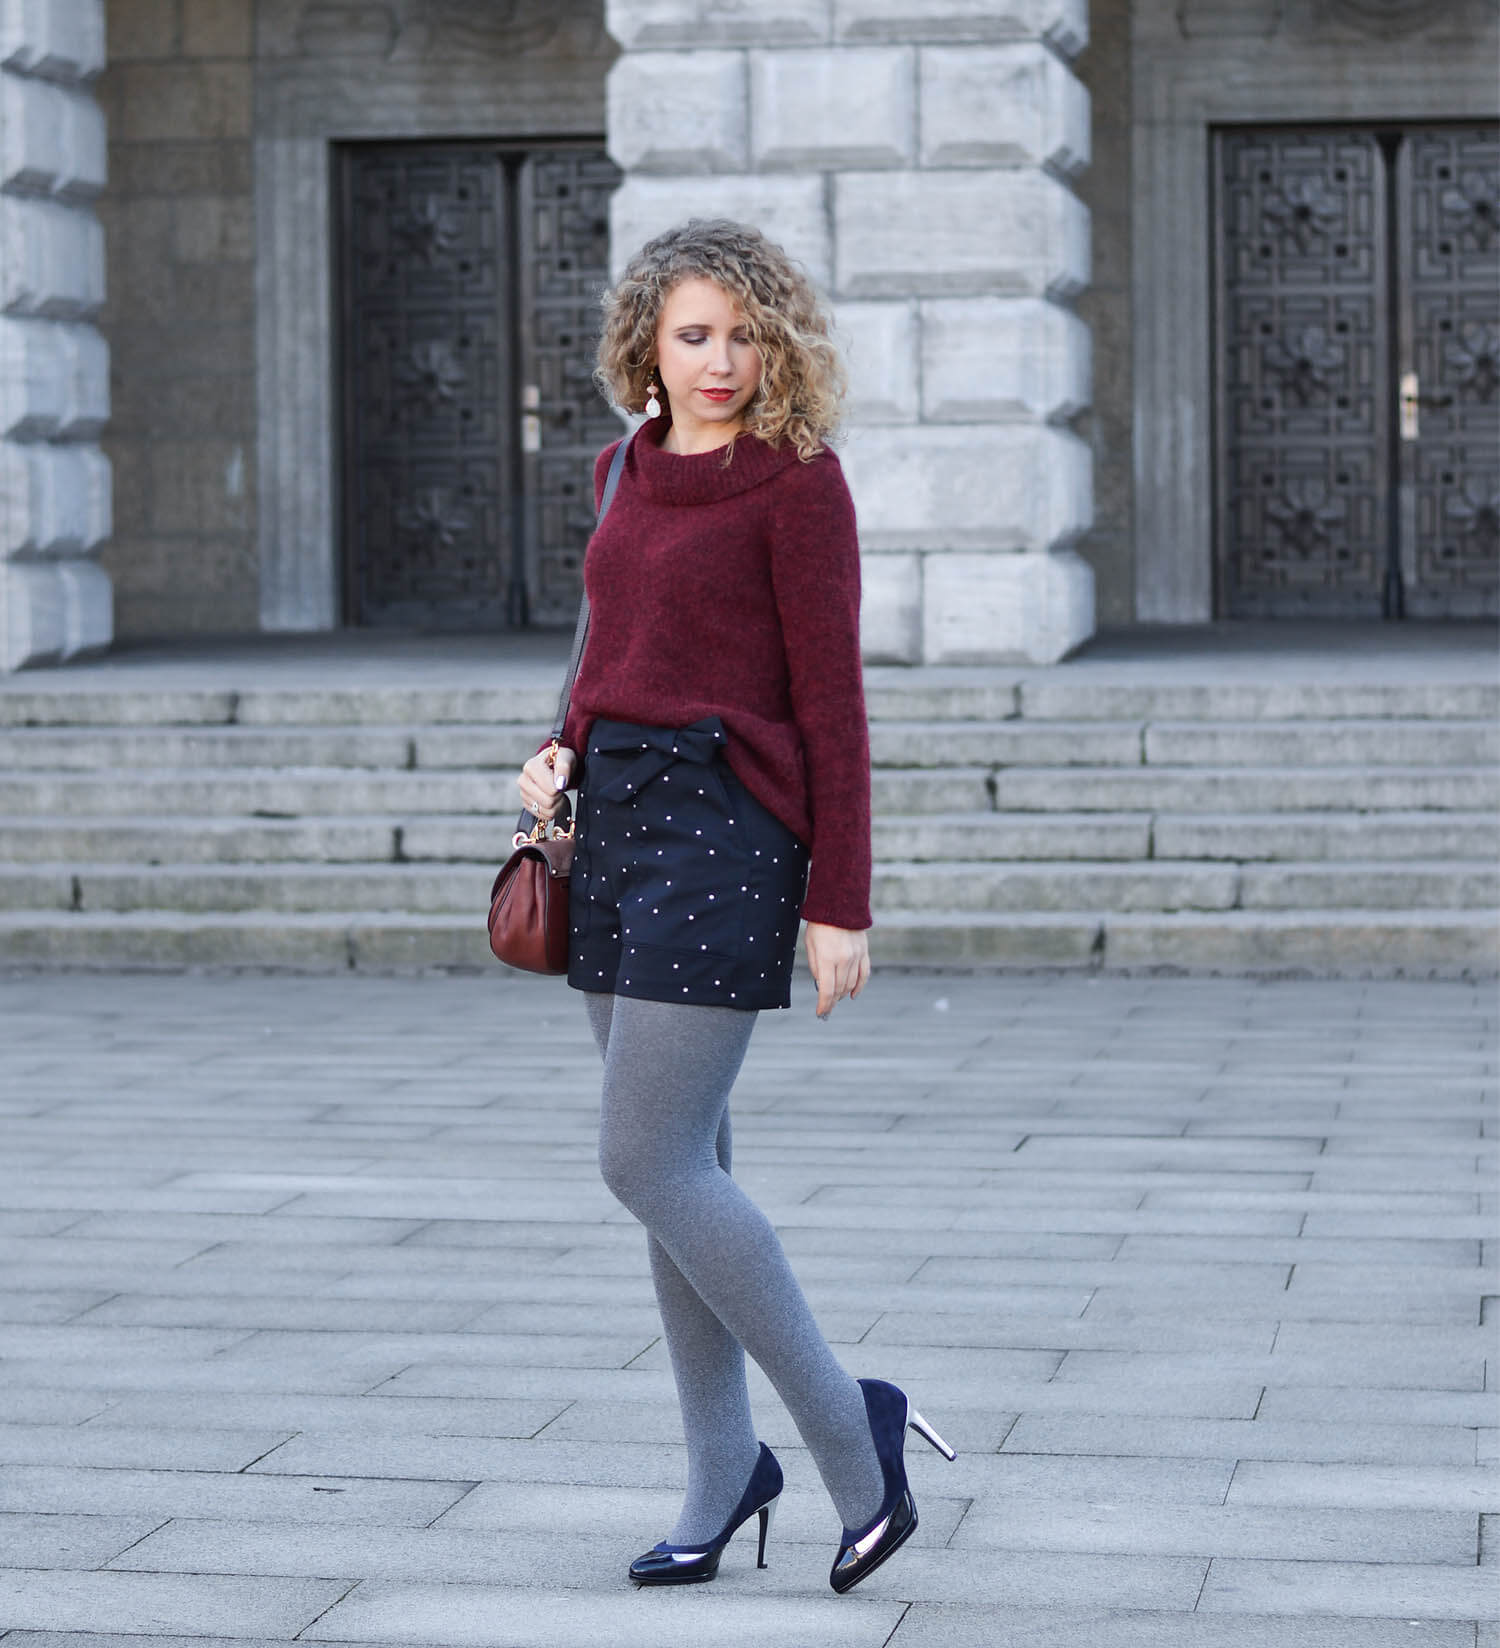 Kationette Fashionblog Outfit: Michael Kors saddle bag, Wool Sweater, Hotpants, Peter Kaiser Pumps